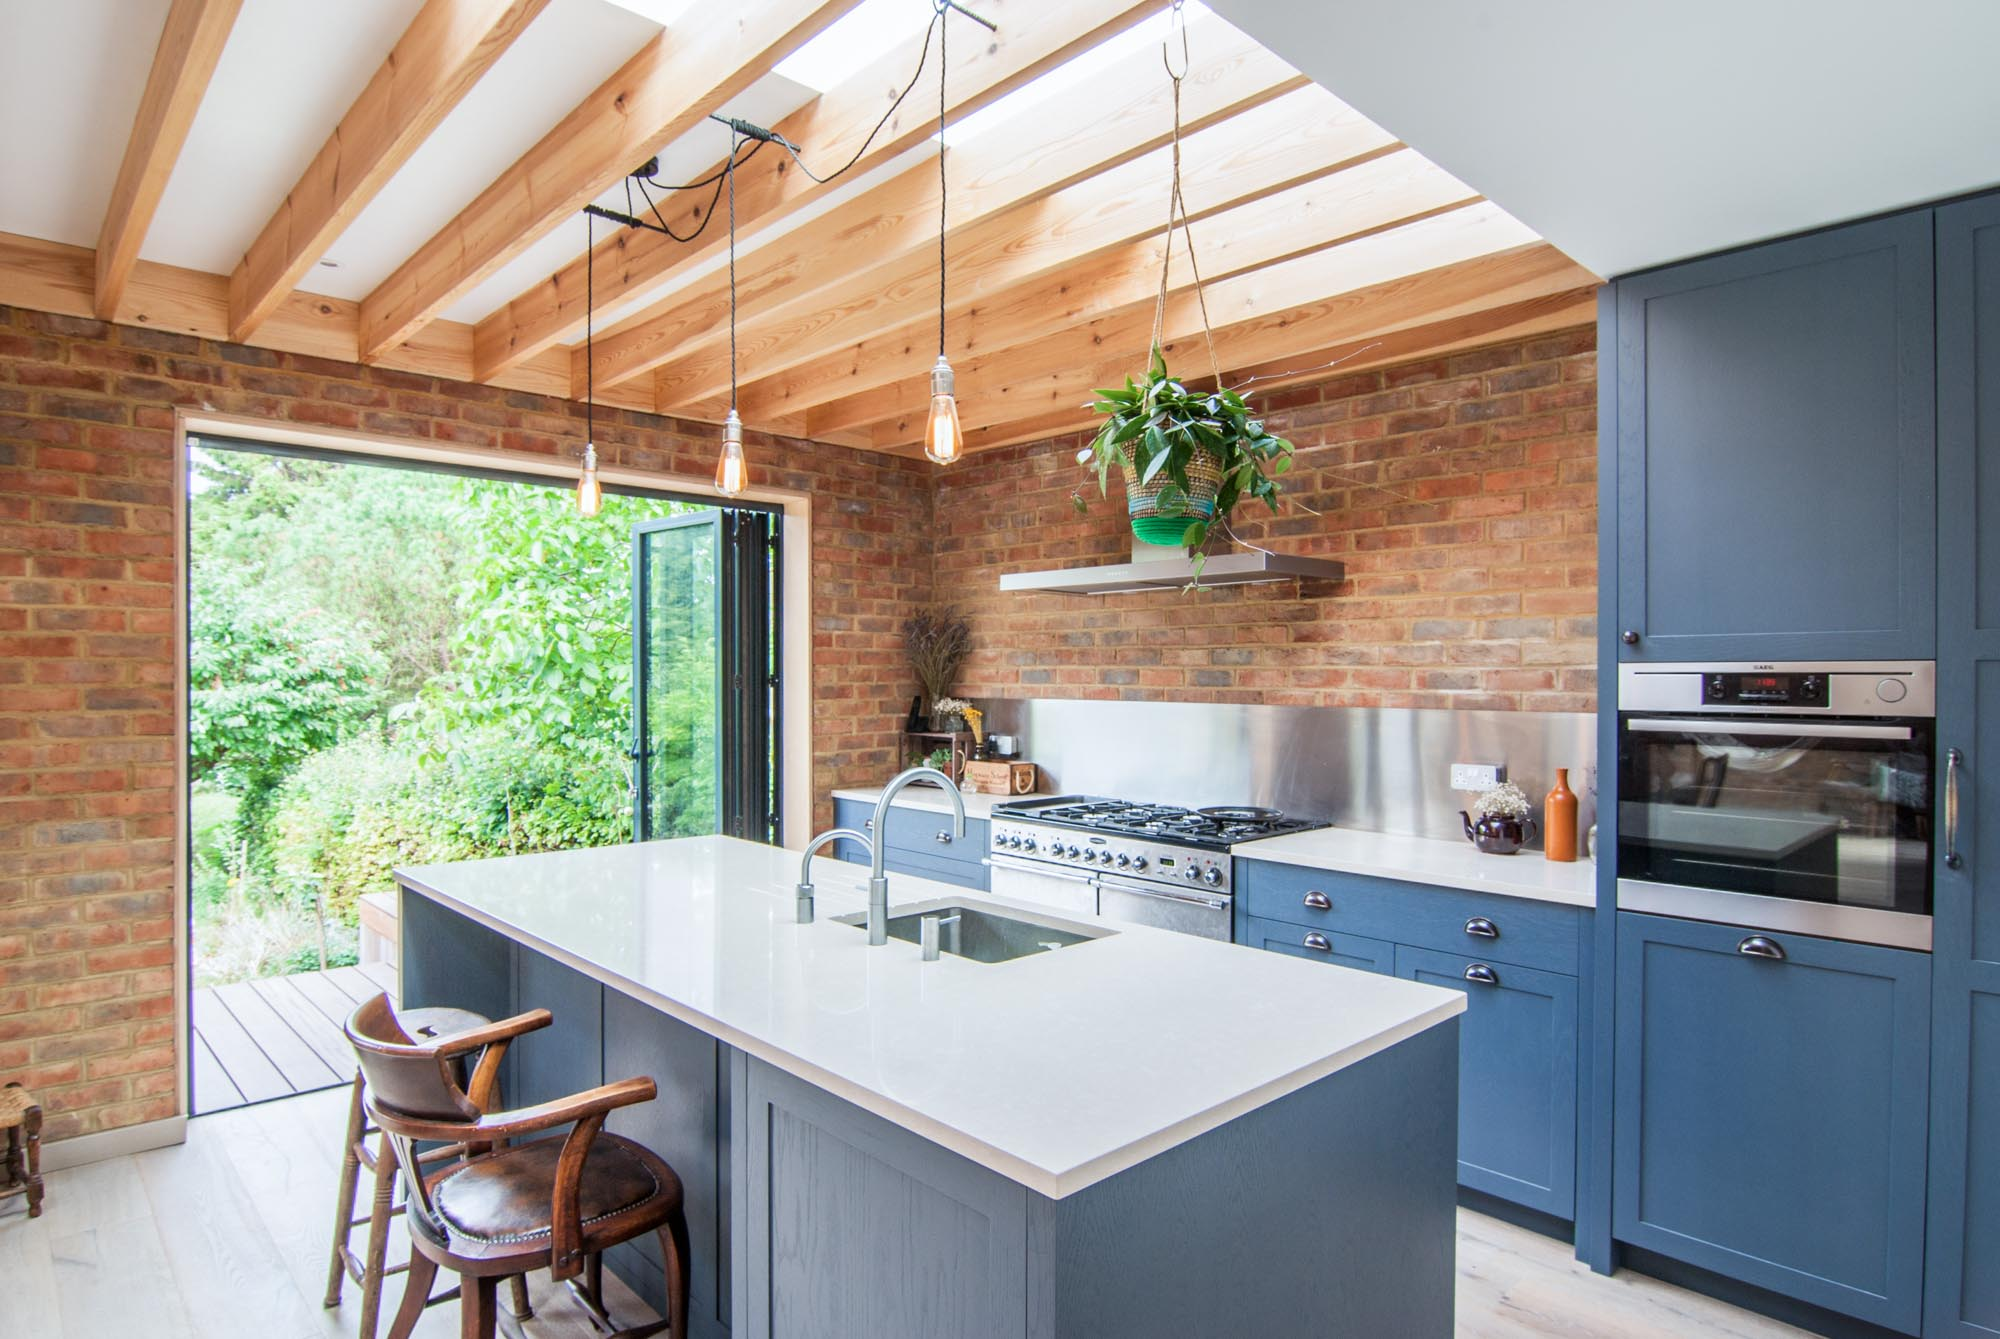 Blue kitchen cabinets stand out amongst the muted colours of the rest of the kitchen.